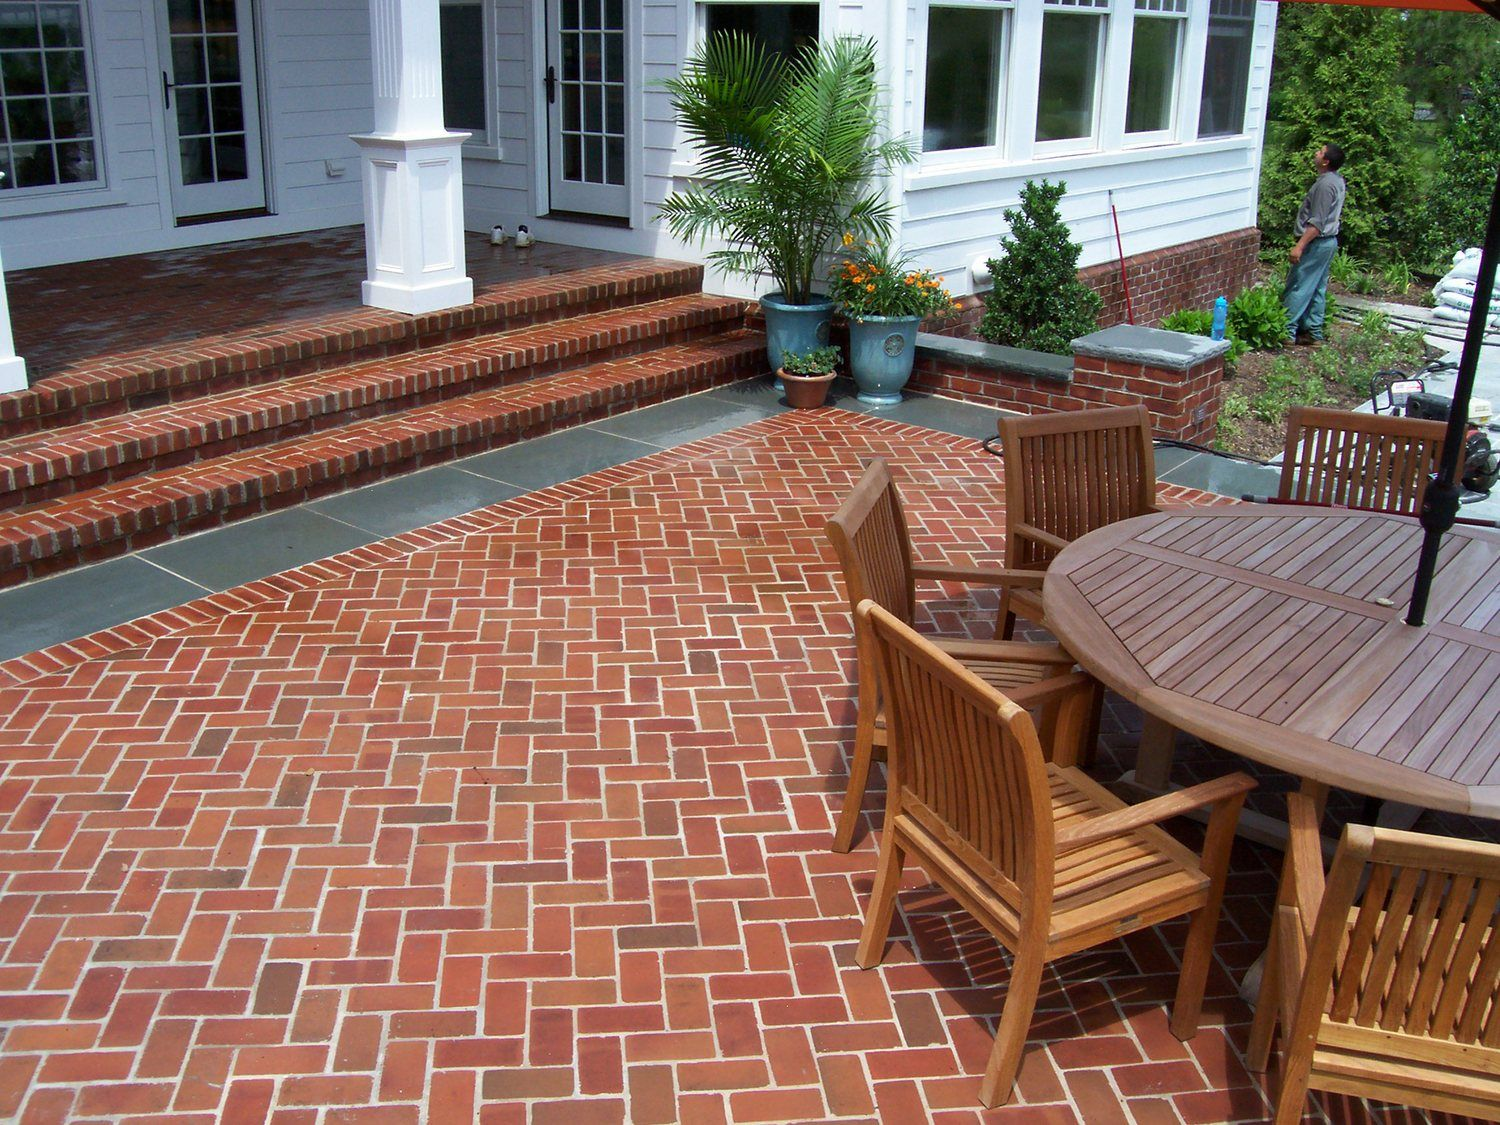 Brick pavers in a herringbone pattern set with a flamed ... on Red Paver Patio Ideas id=11135